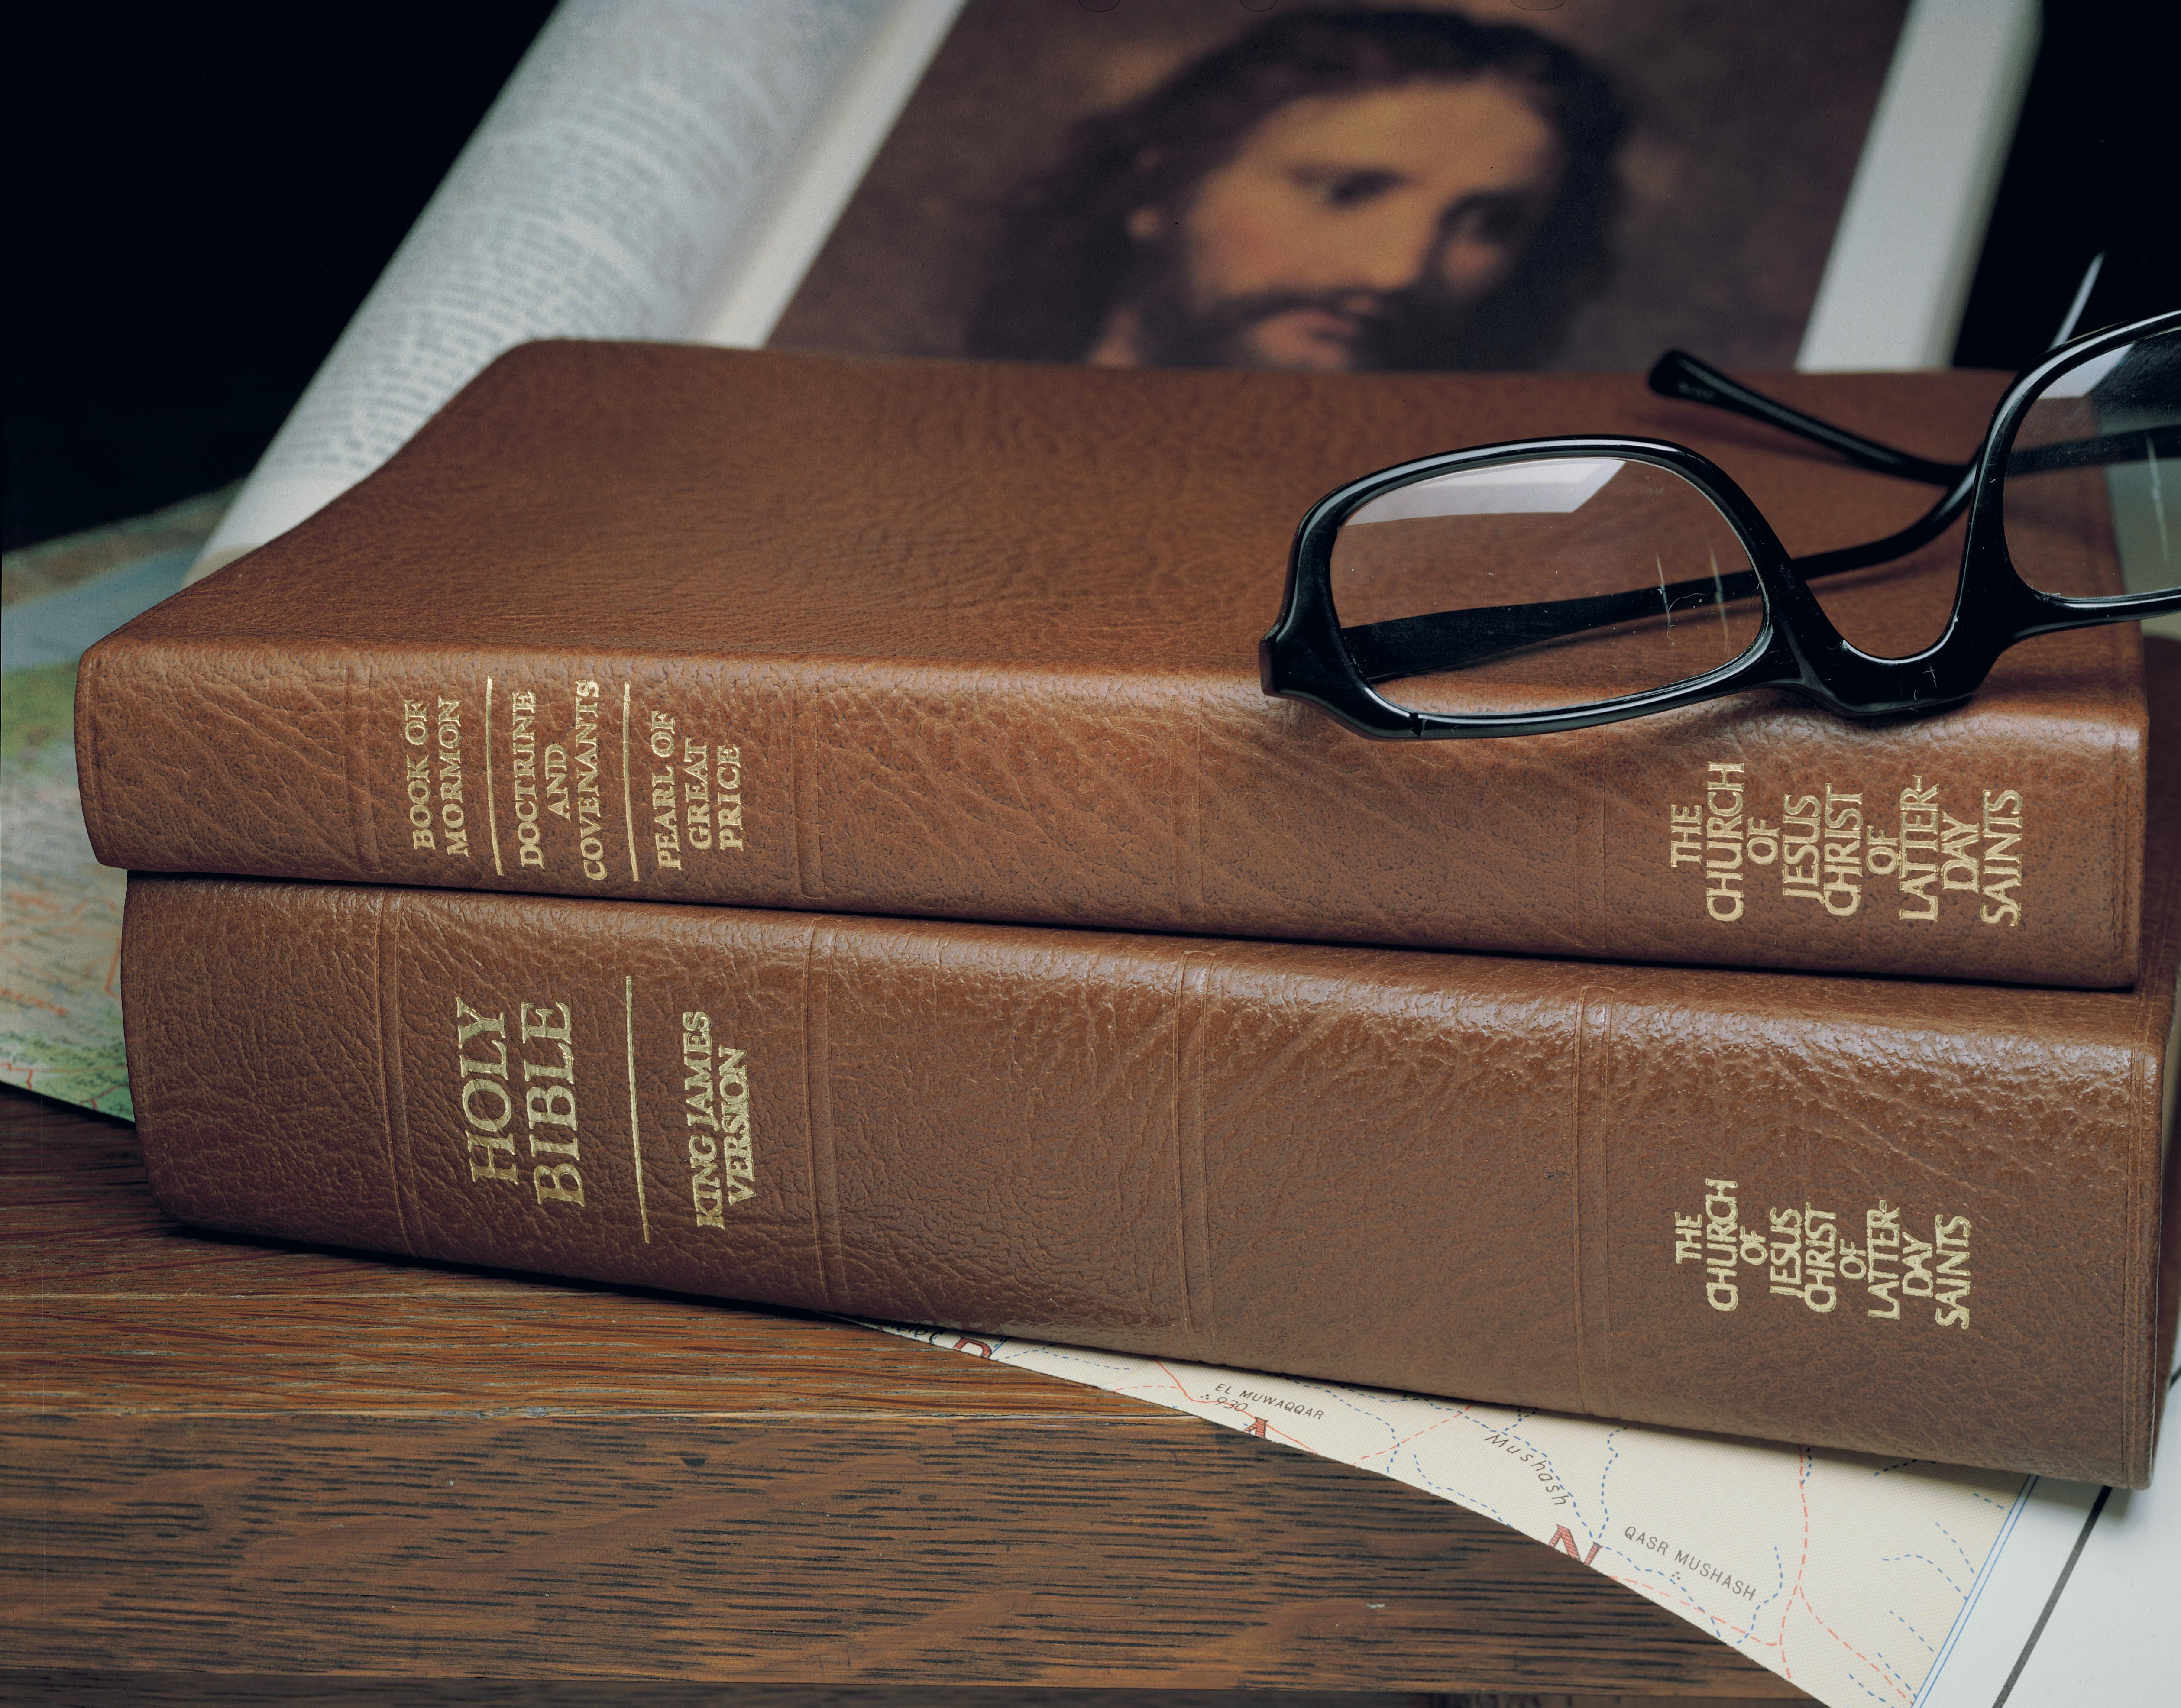 From 1611 to 2011, King James Version of Bible Blesses Lives